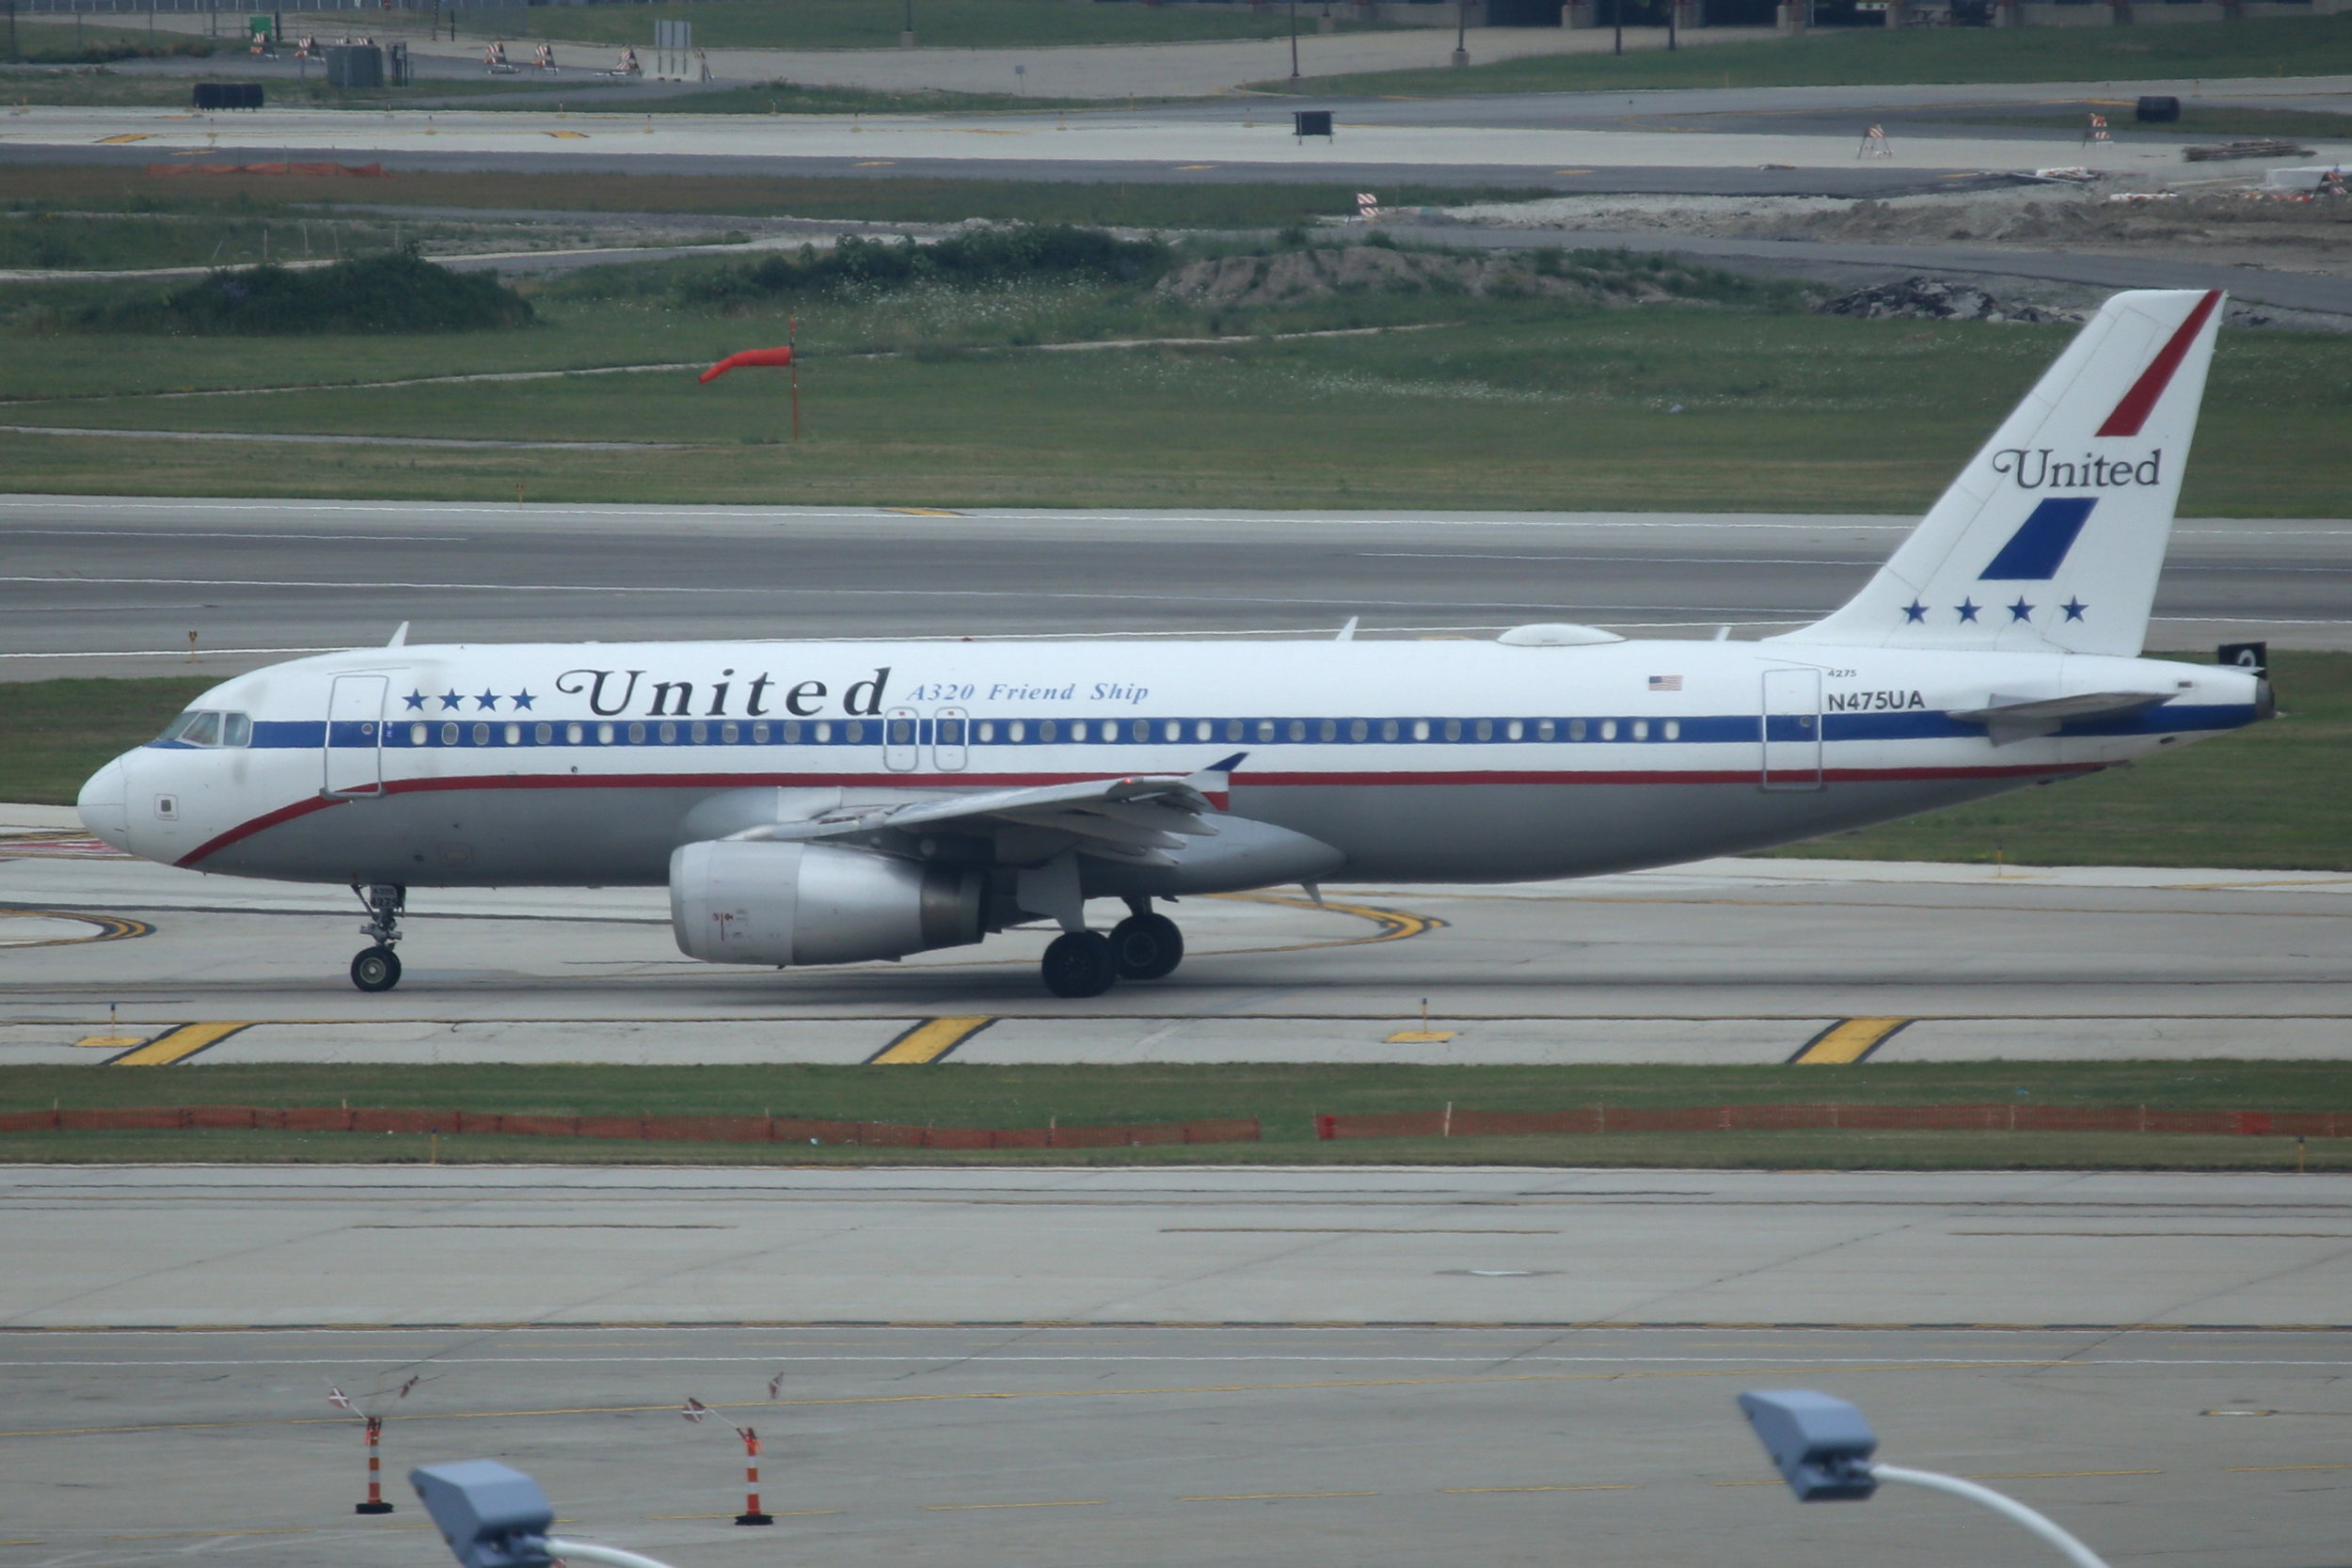 """N475UA United """"Friend Ship"""" Retro A320 taken from the Hilton Hotel at Chicago O'Hare Airport 21st July 2018 by John Wood"""